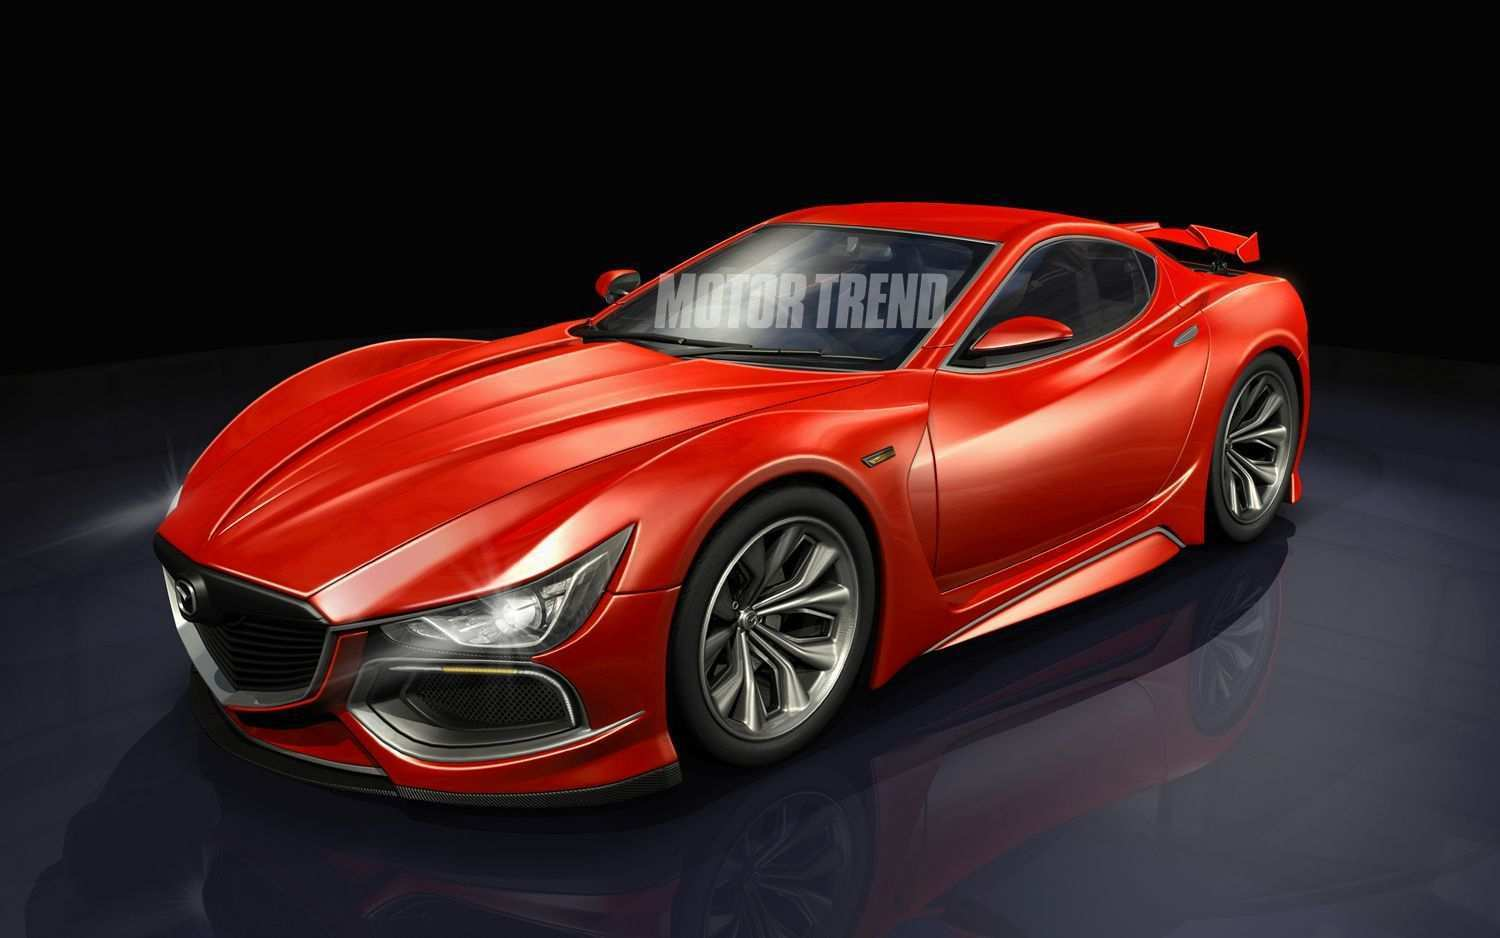 20 The Best 2020 Mazda RX7s Price Design And Review